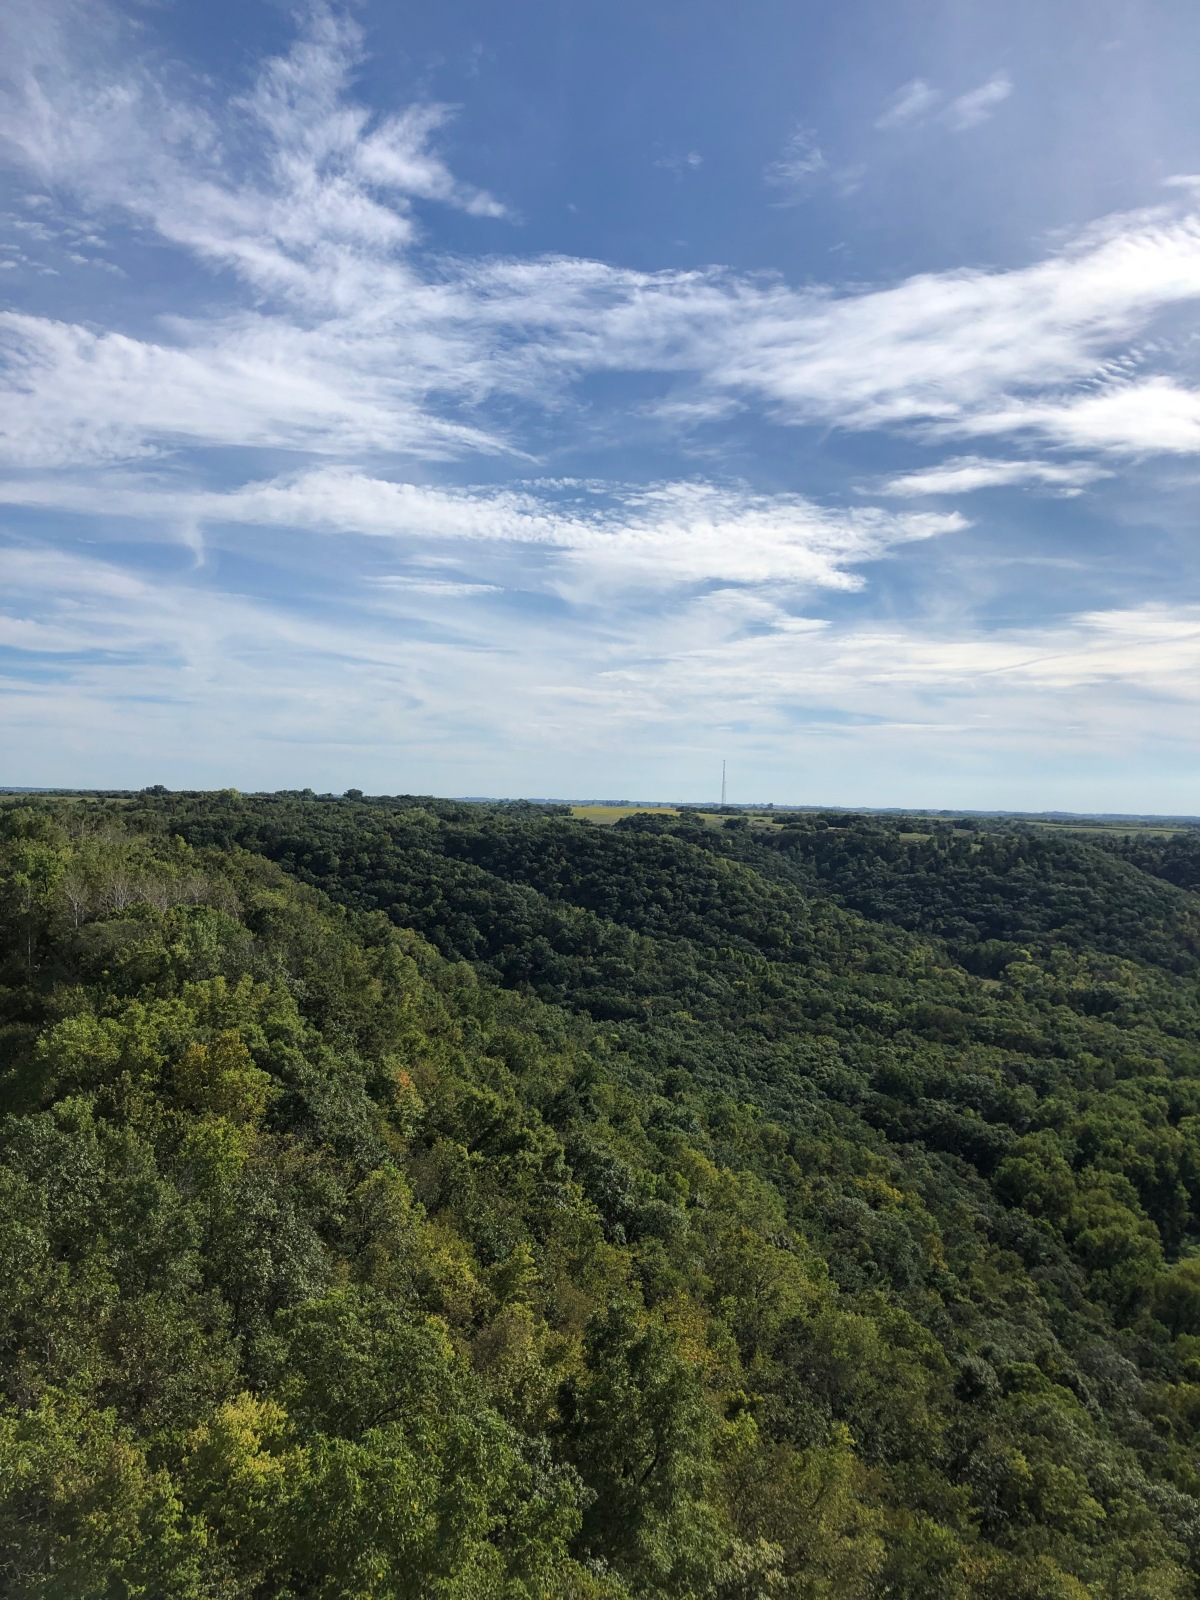 One of the views from the Fire Tower Lookout.